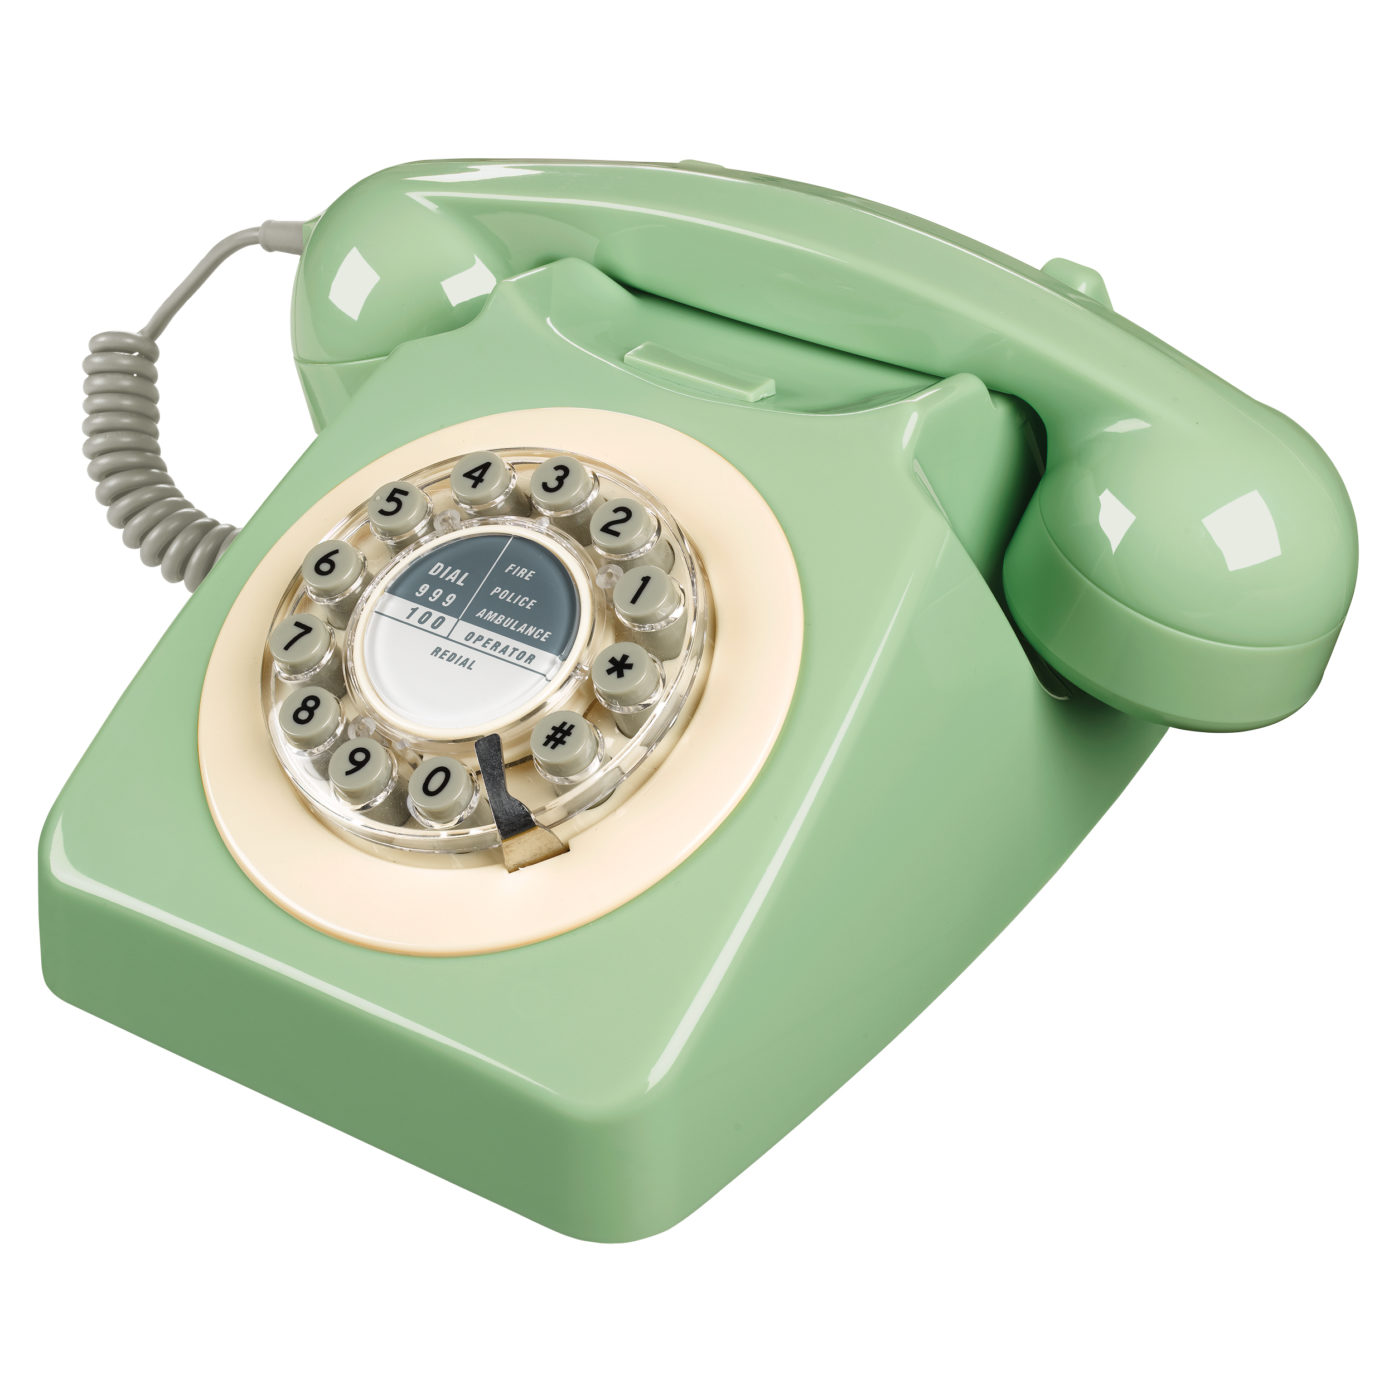 746phone_swedishgreen_tp039_hi